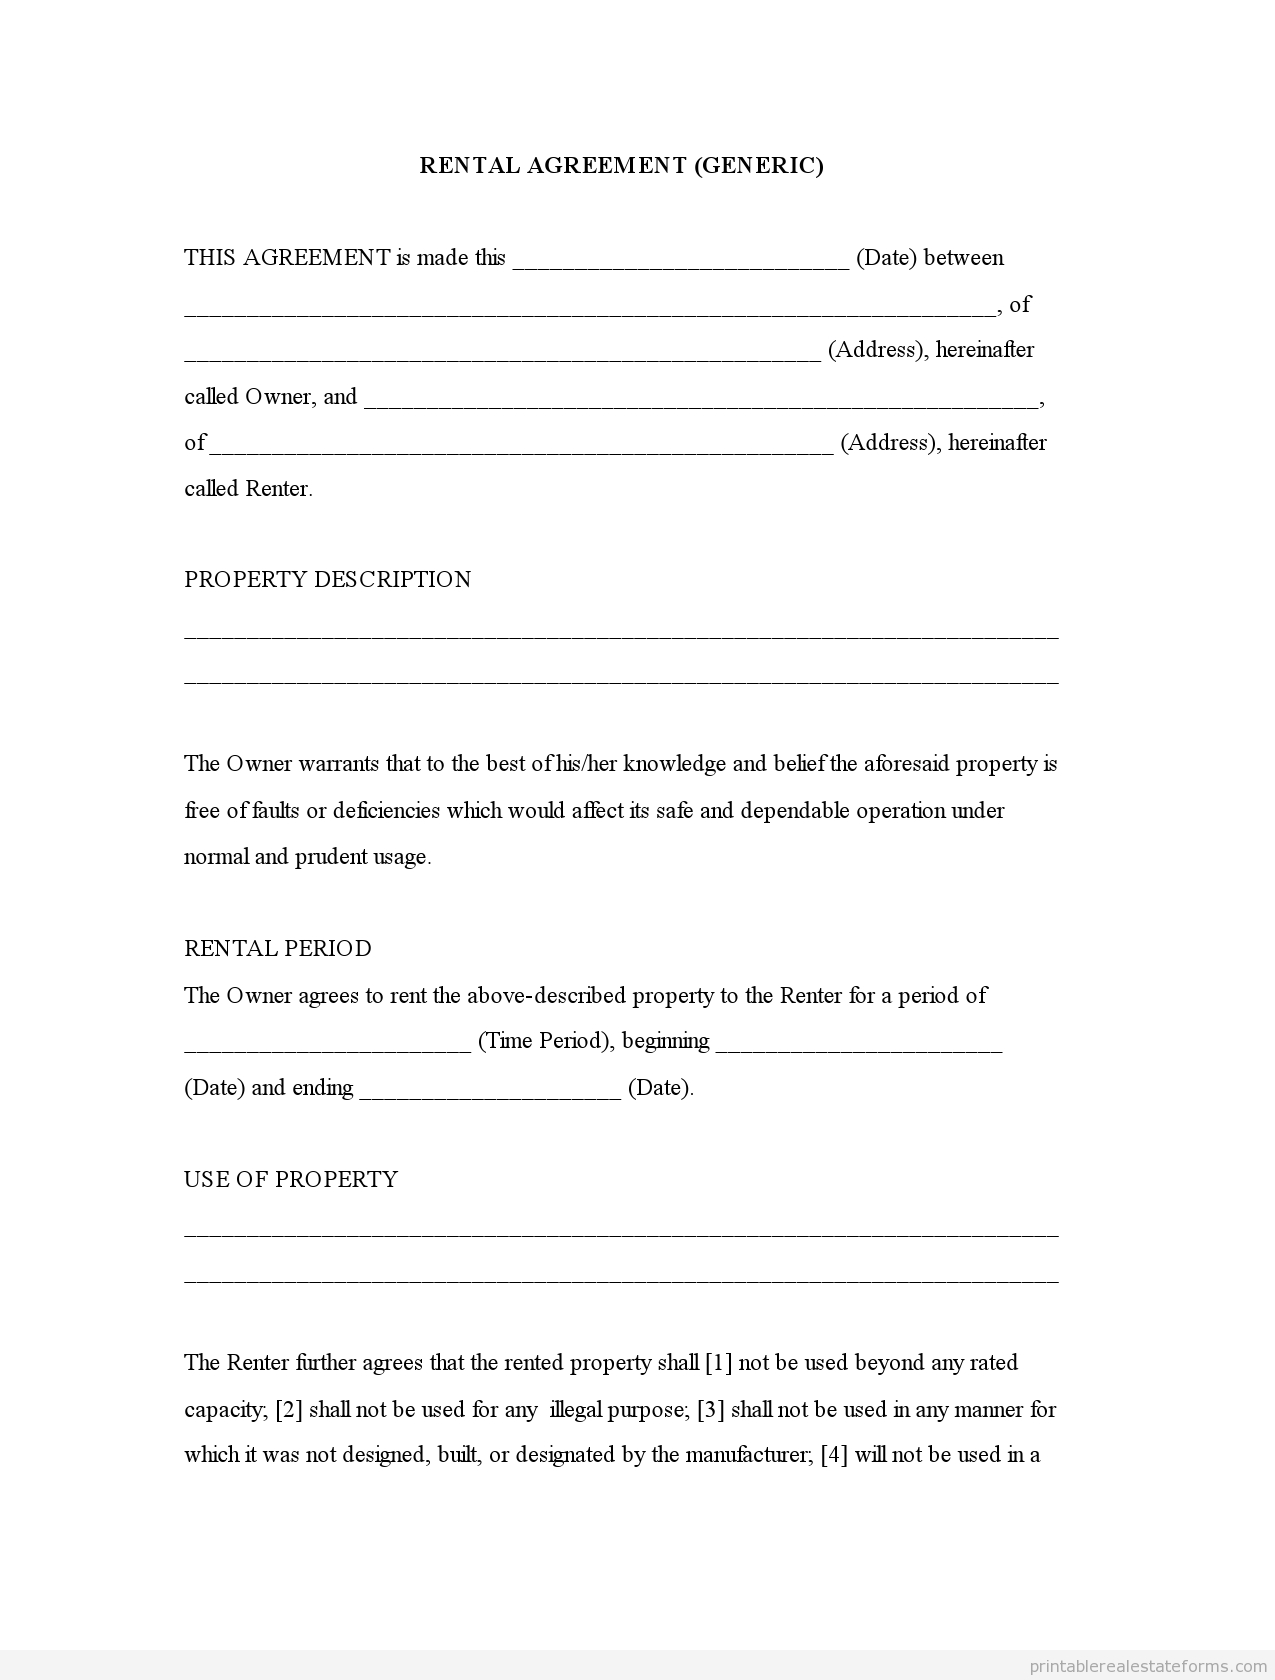 Free Printable Rental Agreement | Rental Agreement (Generic)0001 - Free Printable Rental Application Form